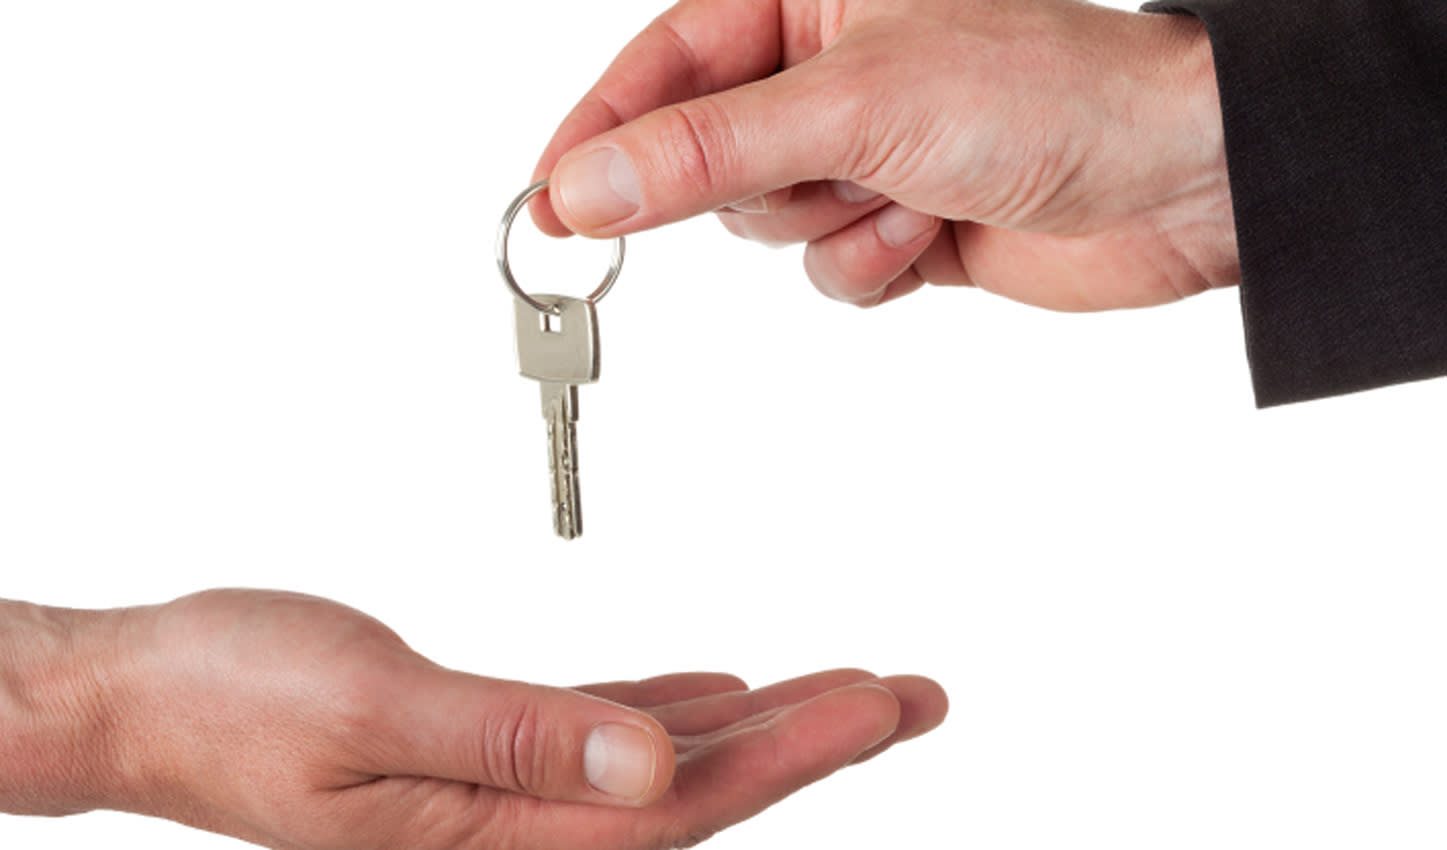 More than half of market are first-time buyers